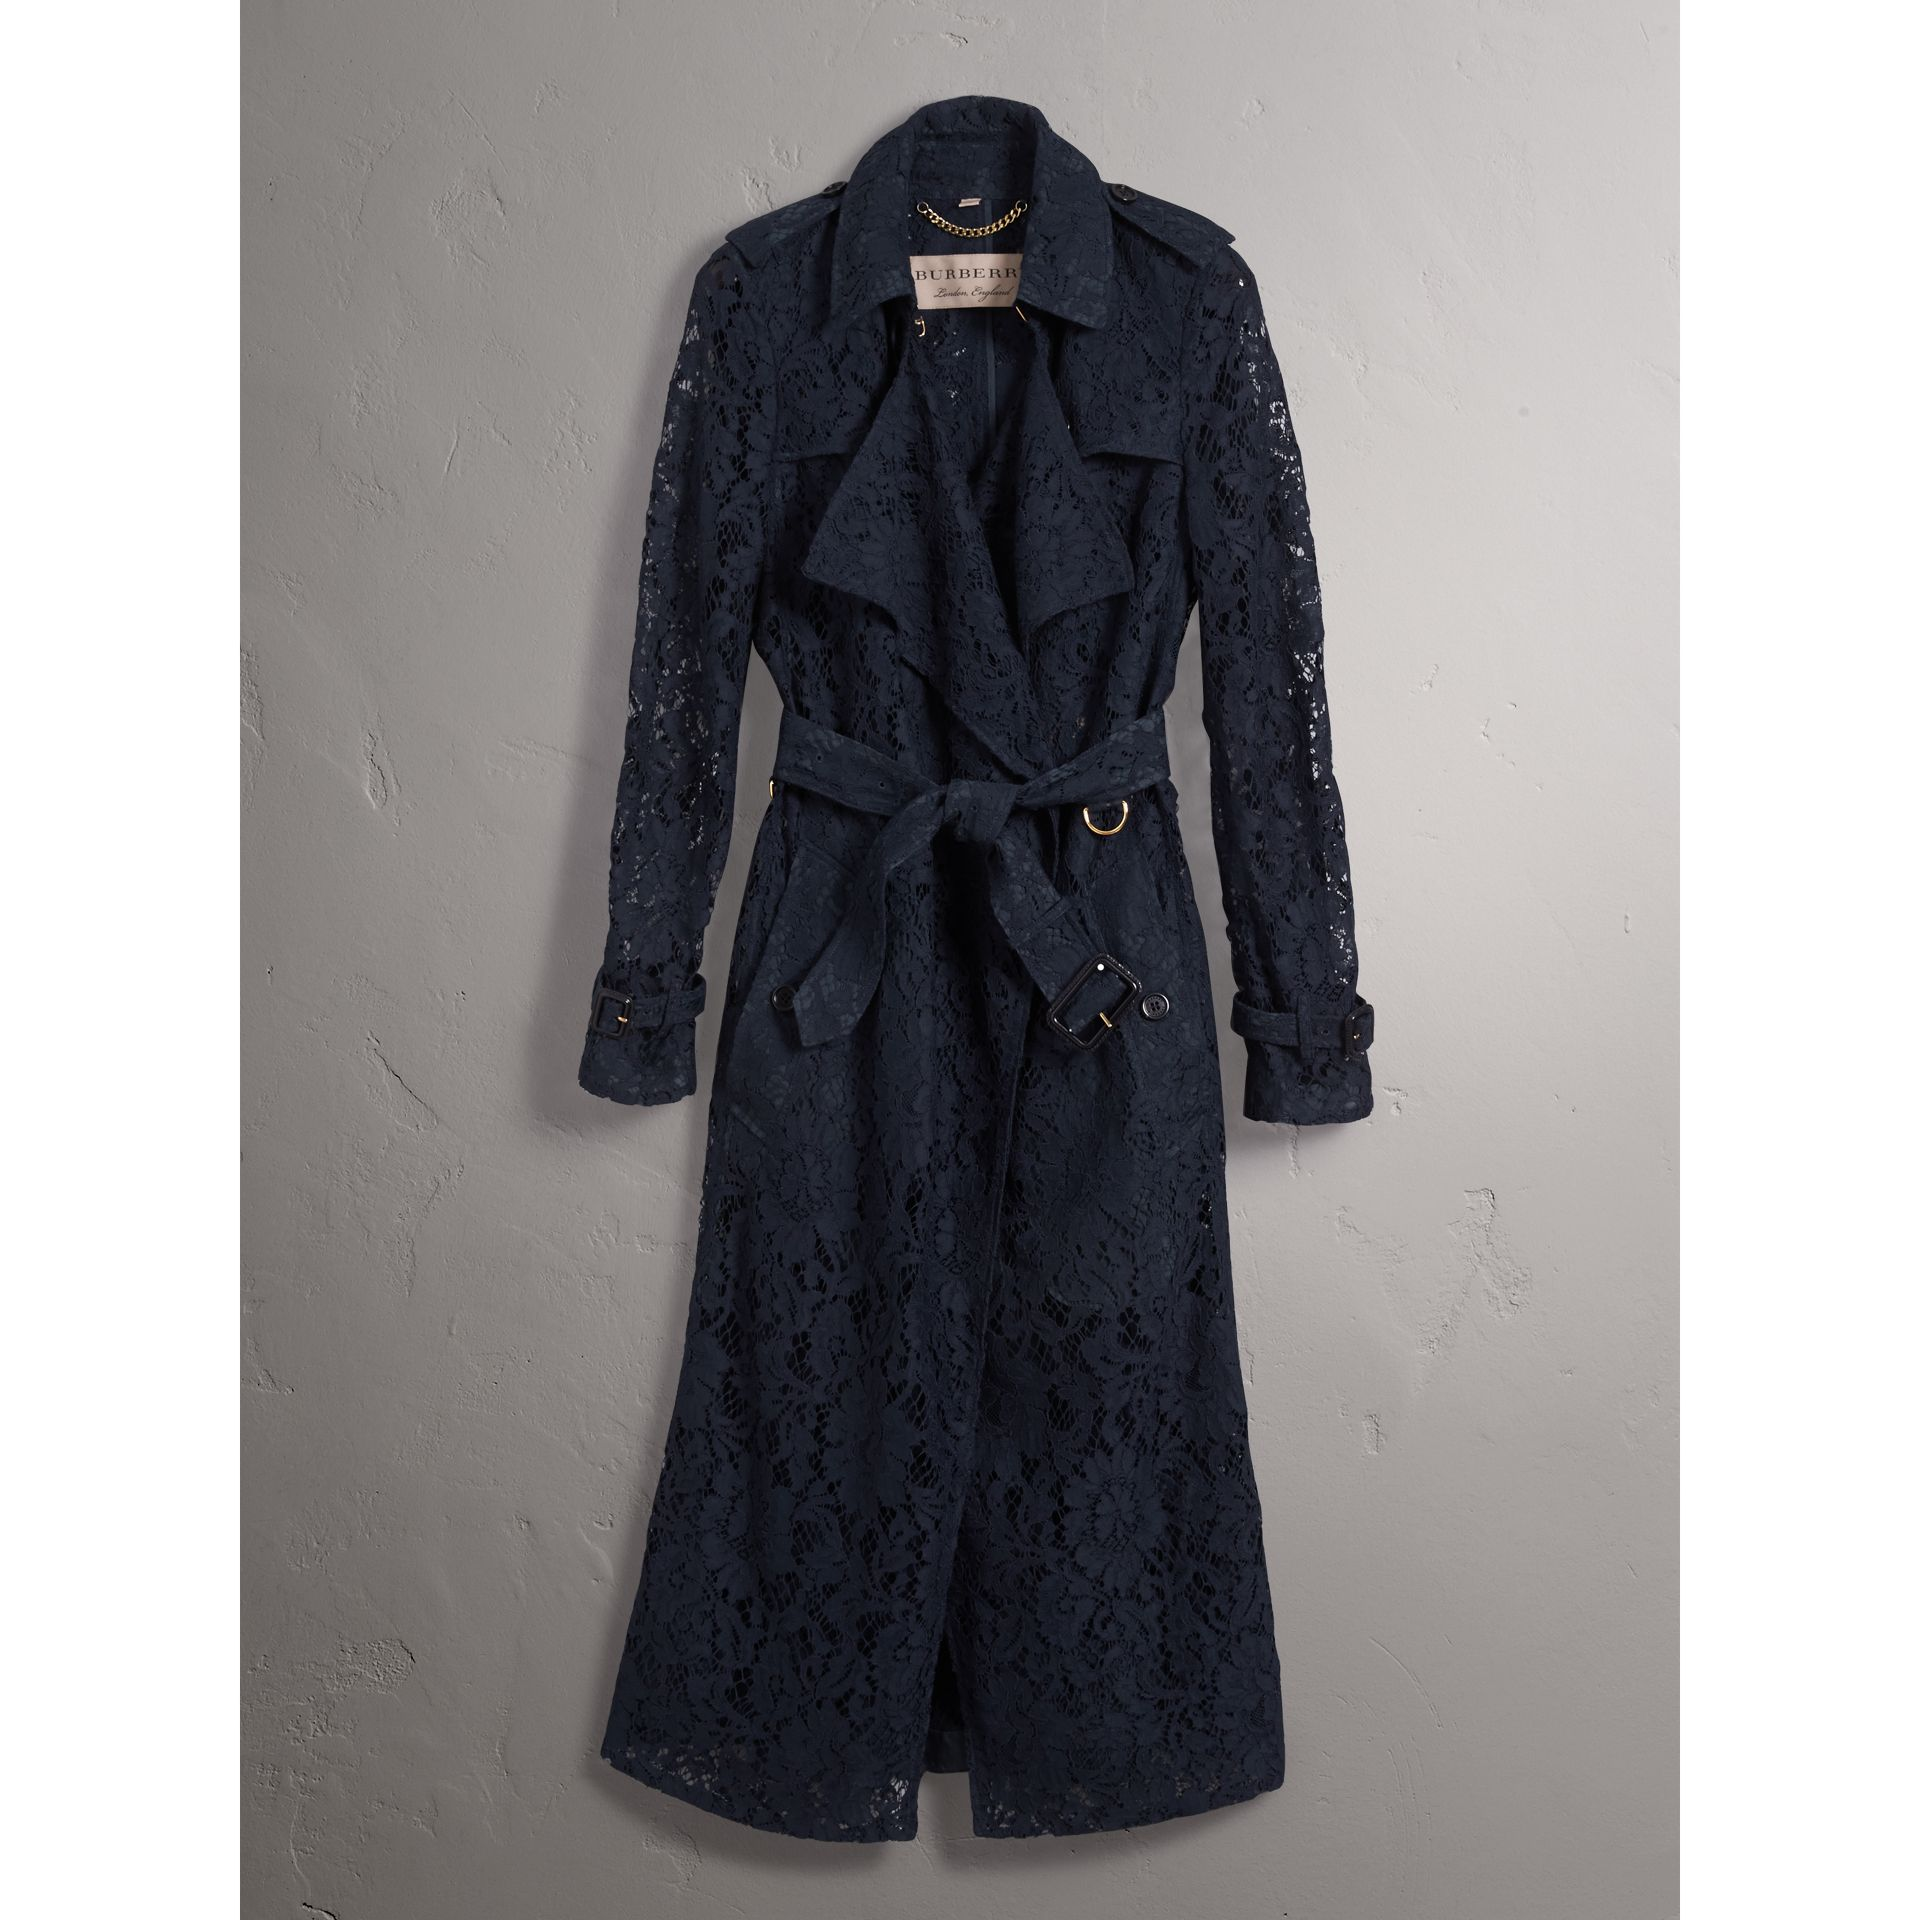 Macramé Lace Trench Coat in Navy - Women | Burberry - gallery image 3